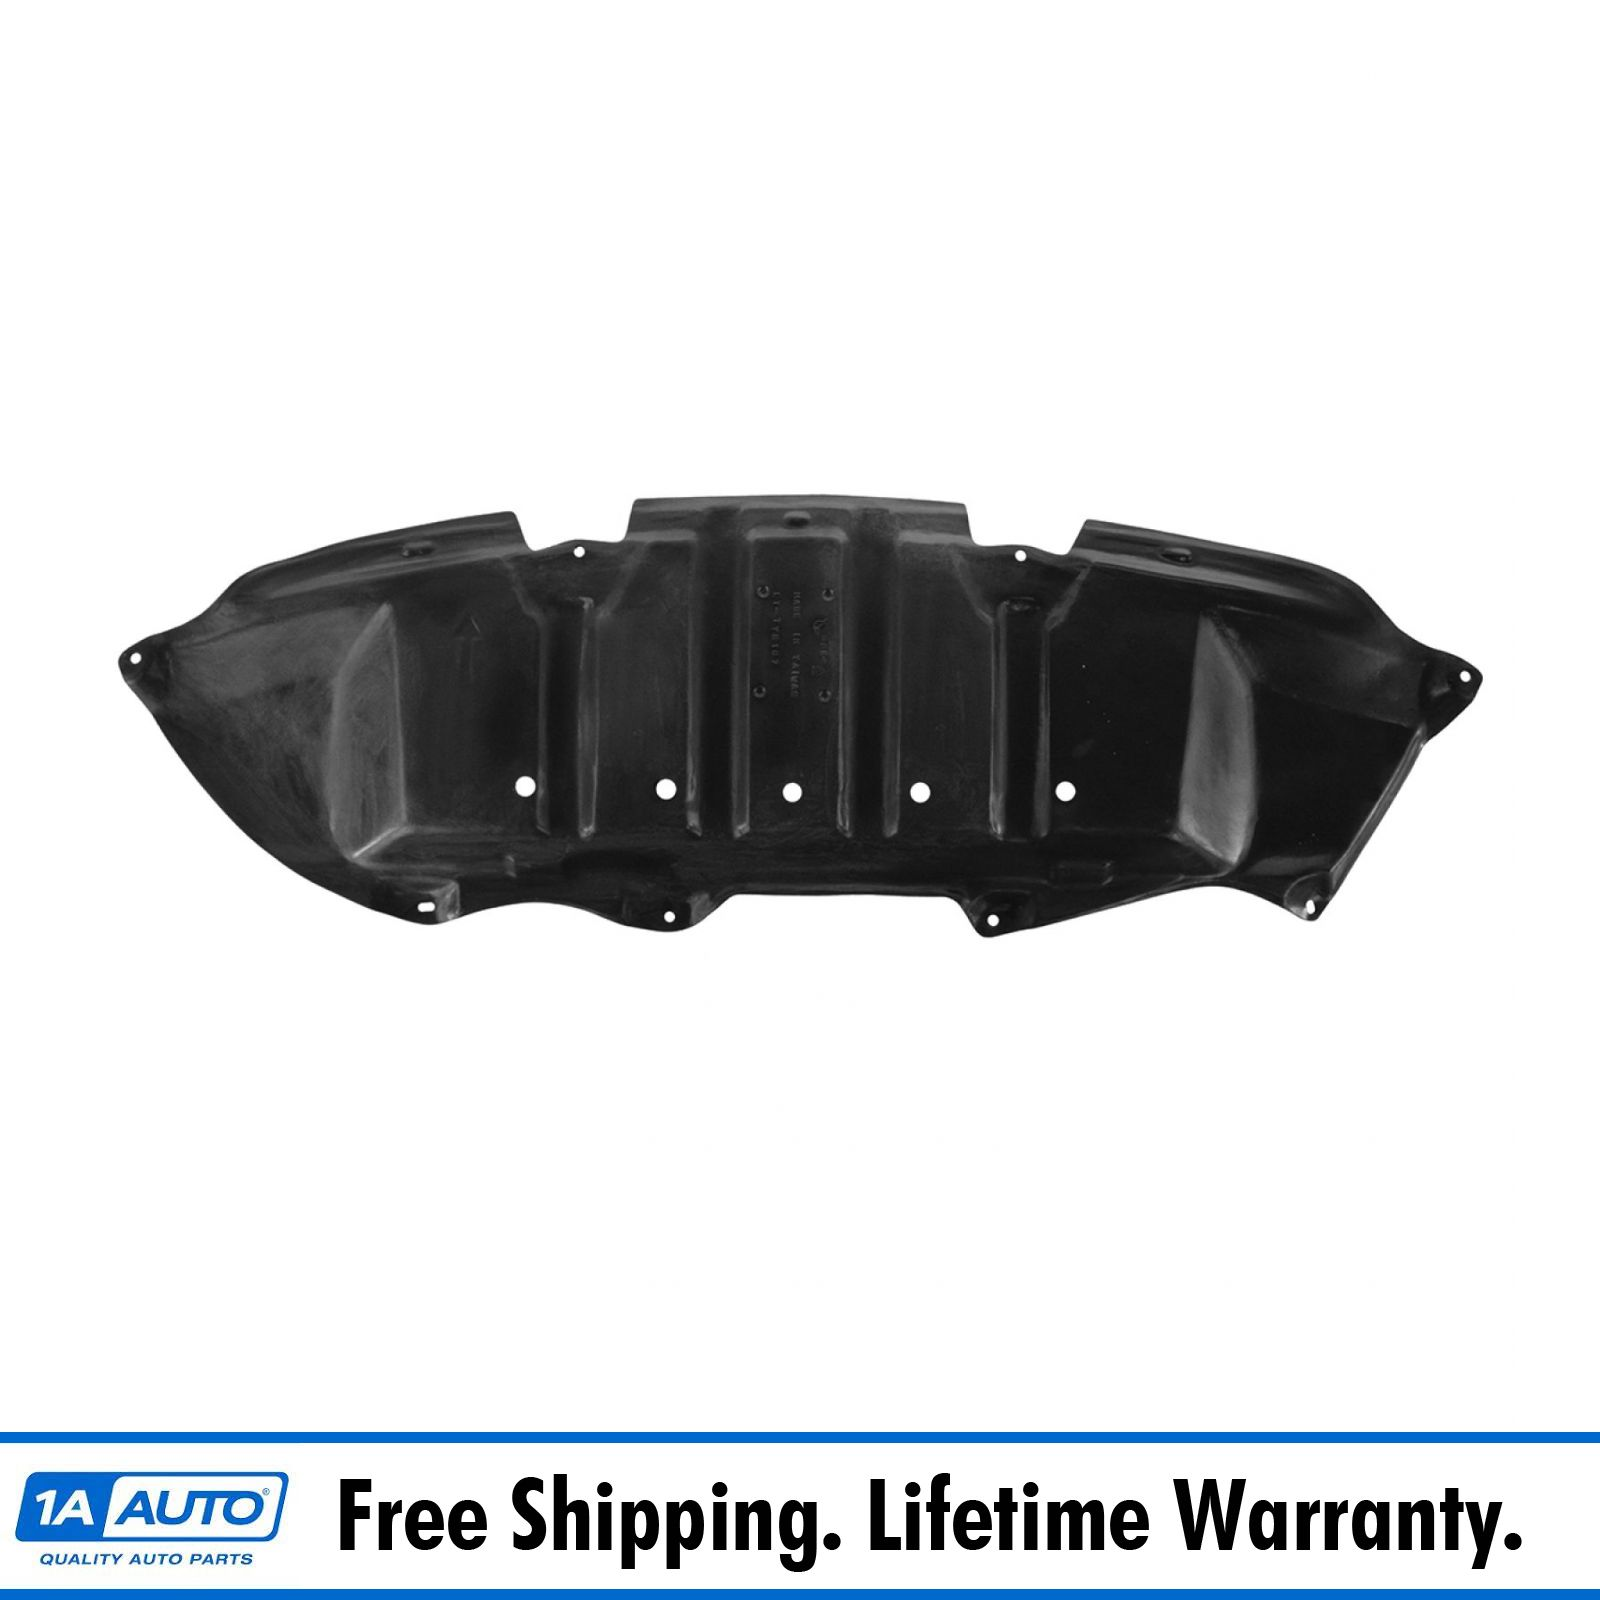 LS430 01-06 ENGINE SPLASH SHIELD Rear Under Cover